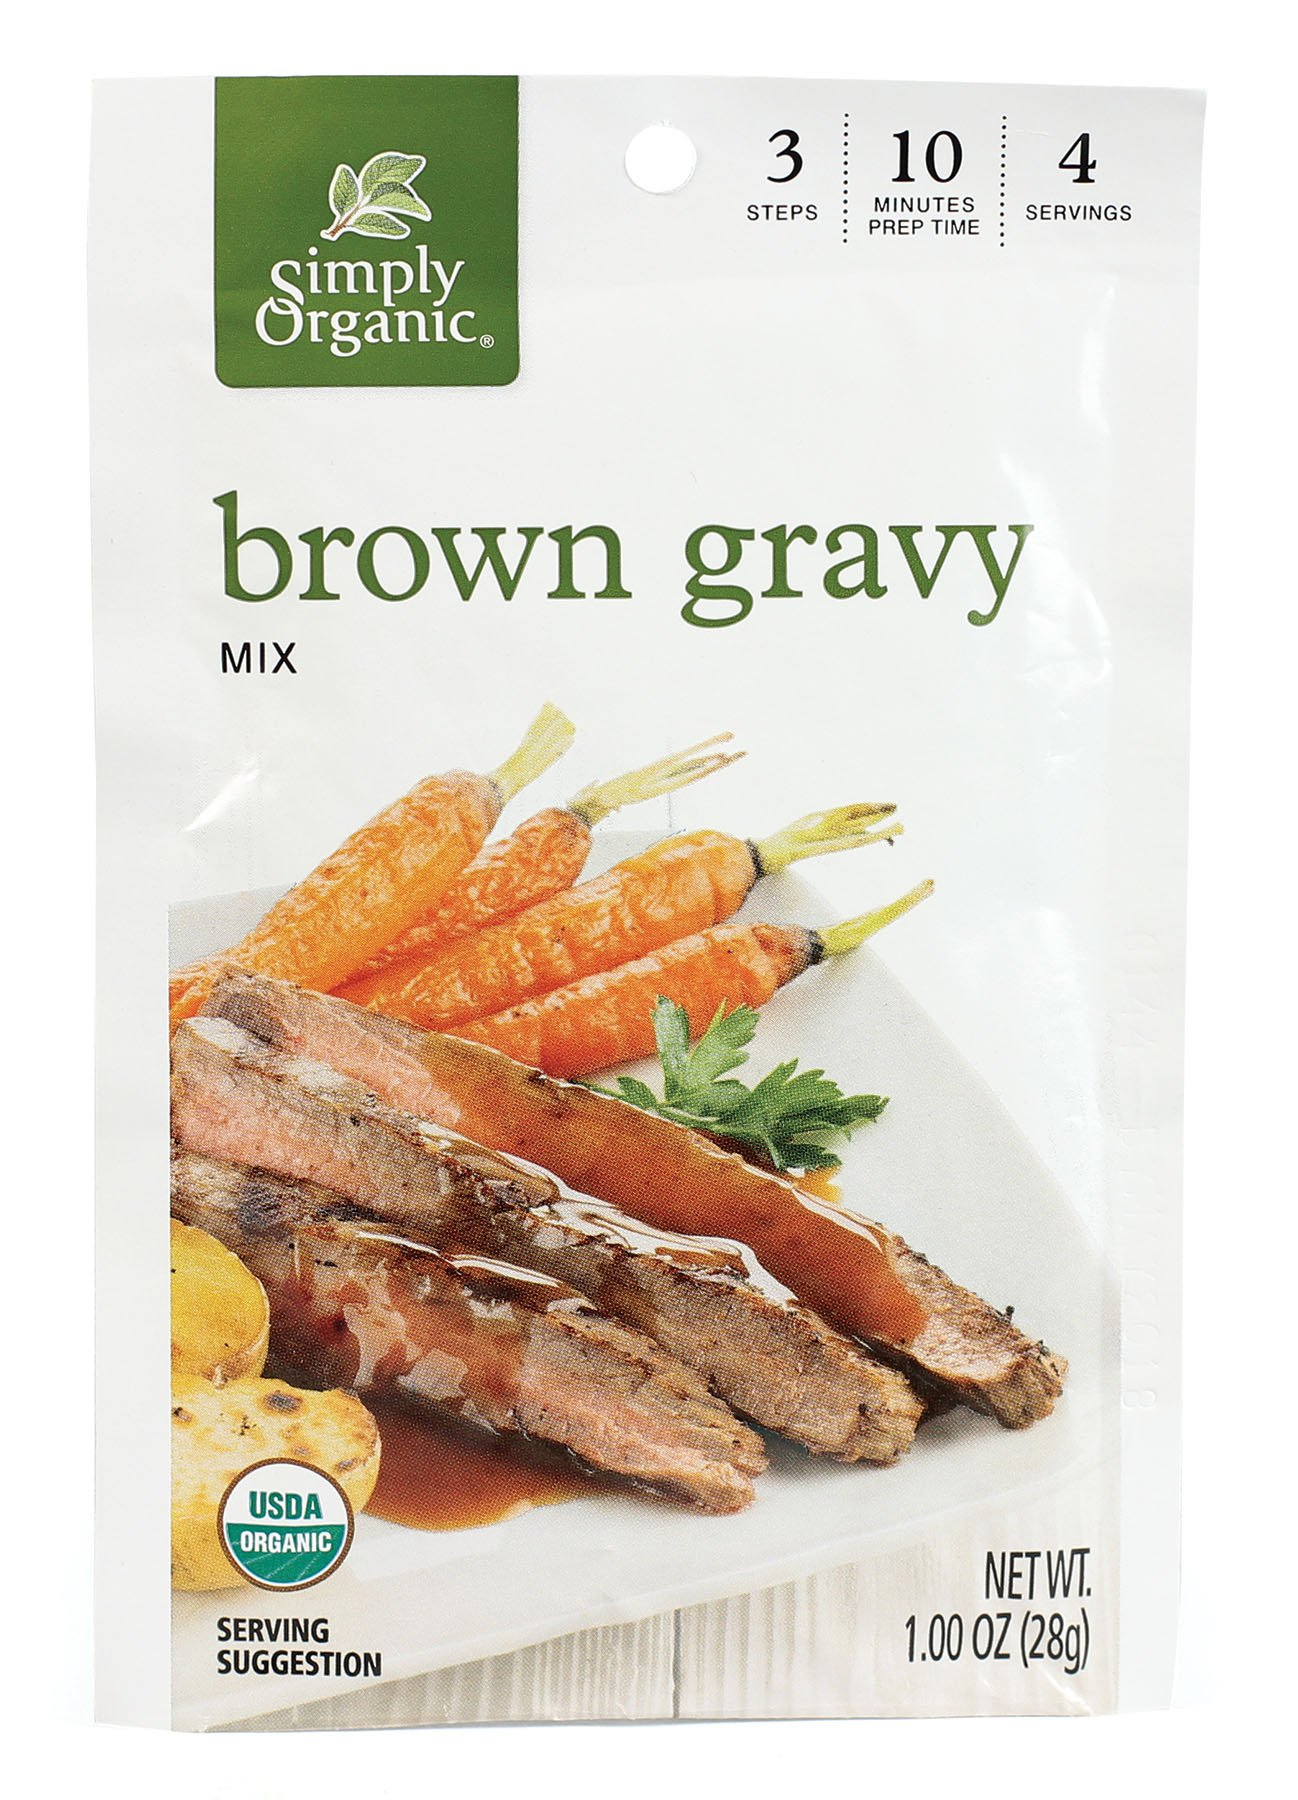 Simply Organic Brown Gravy, Seasoning Mix, Certified Organic, 1-Ounce Packets (Pack of 12) by Simply Organic